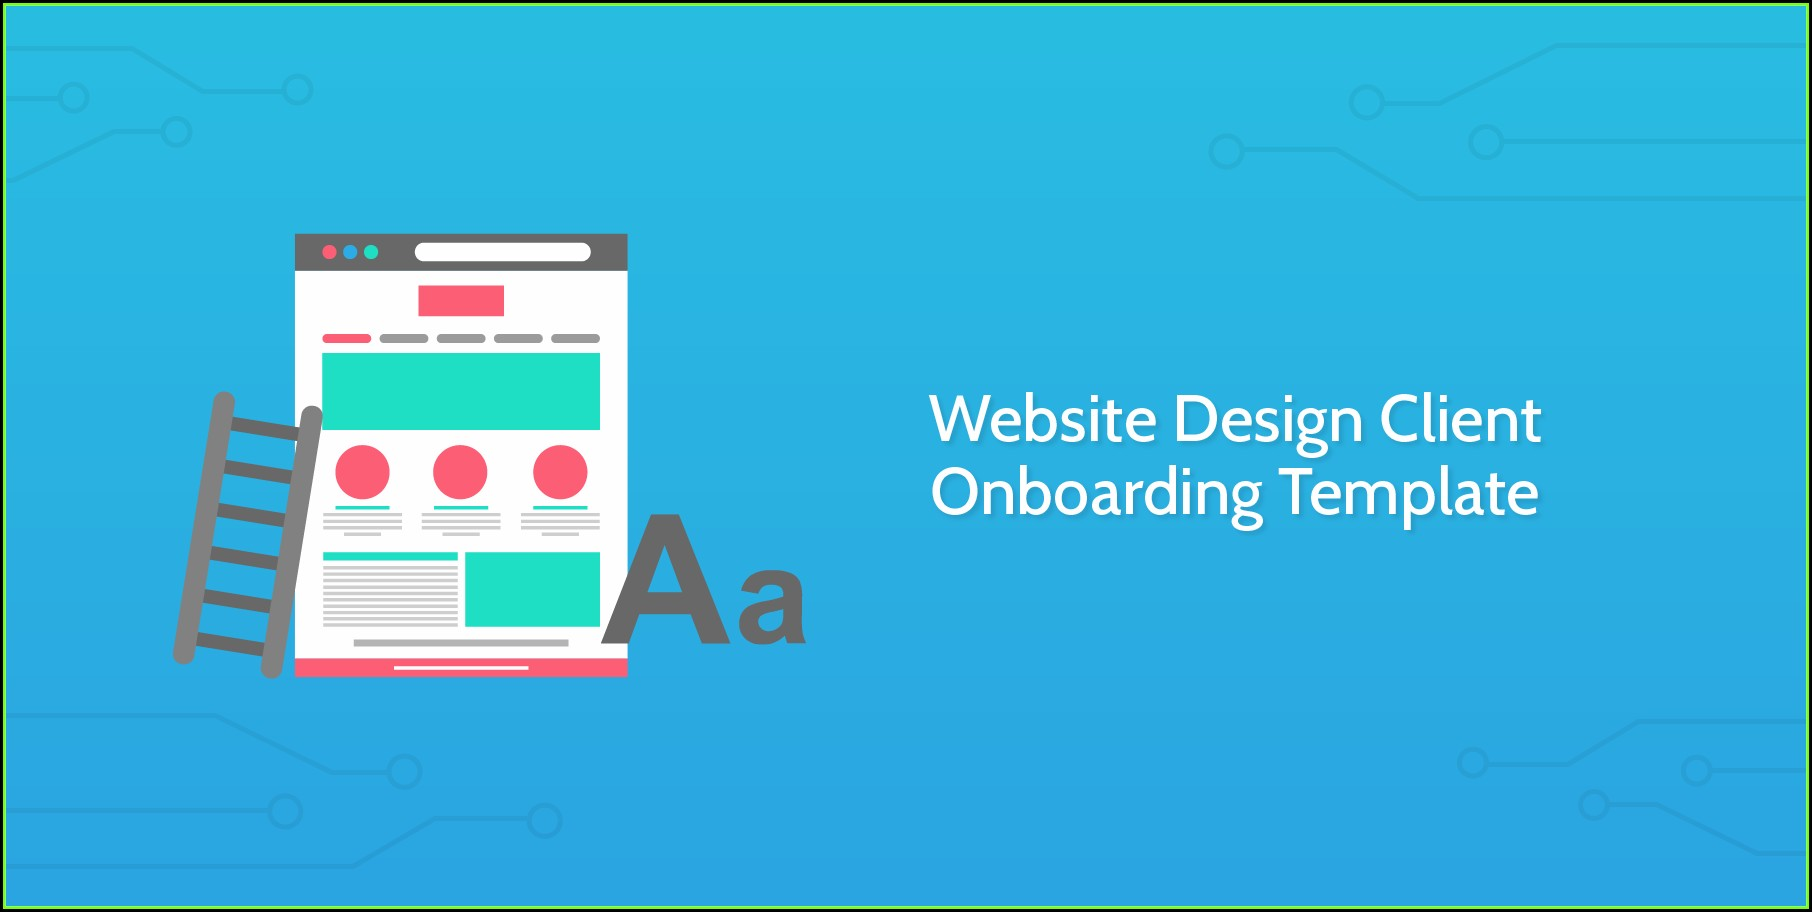 Client Onboarding Process Template